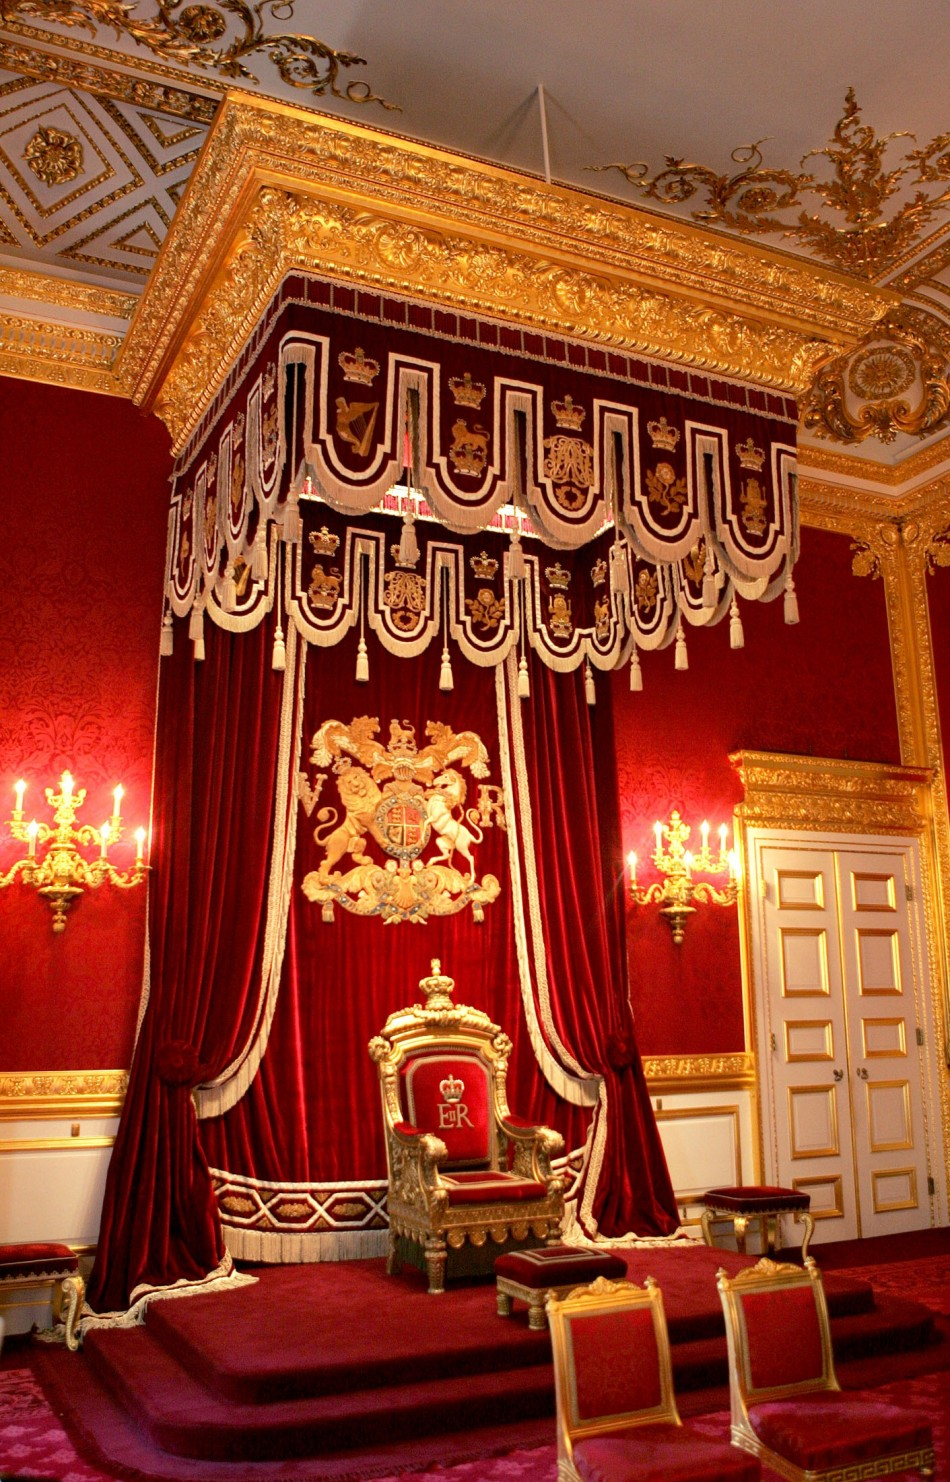 Buckingham Palace Rooms For Rent